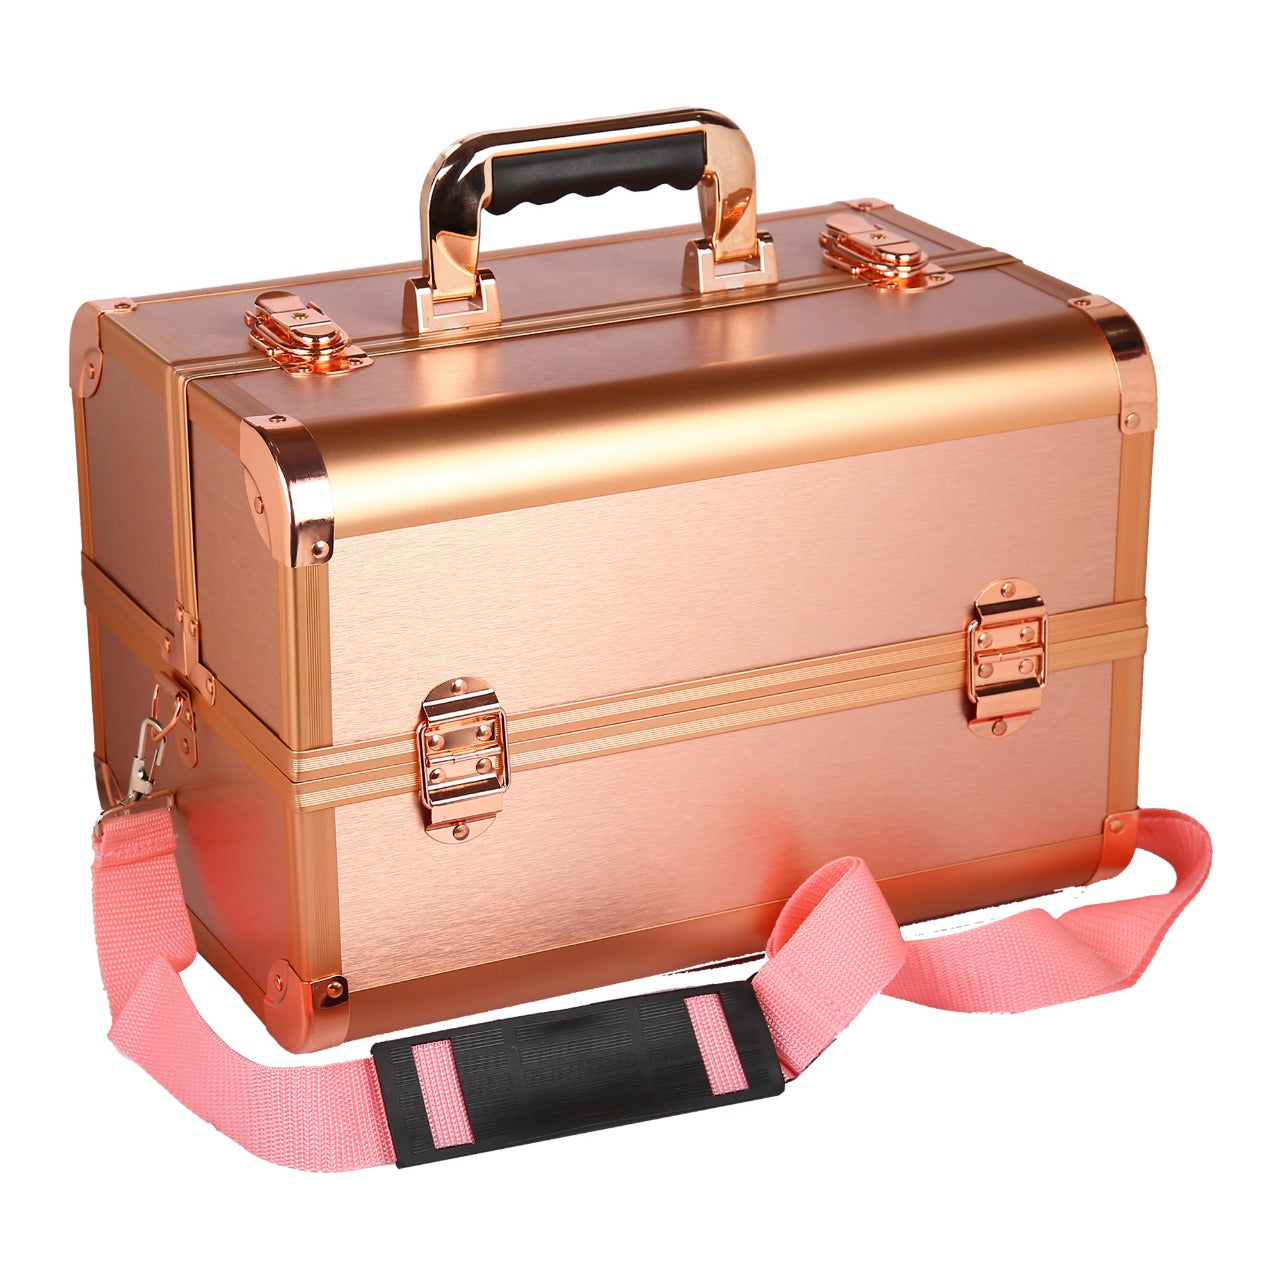 Rosaceous Makeup Vanity Case